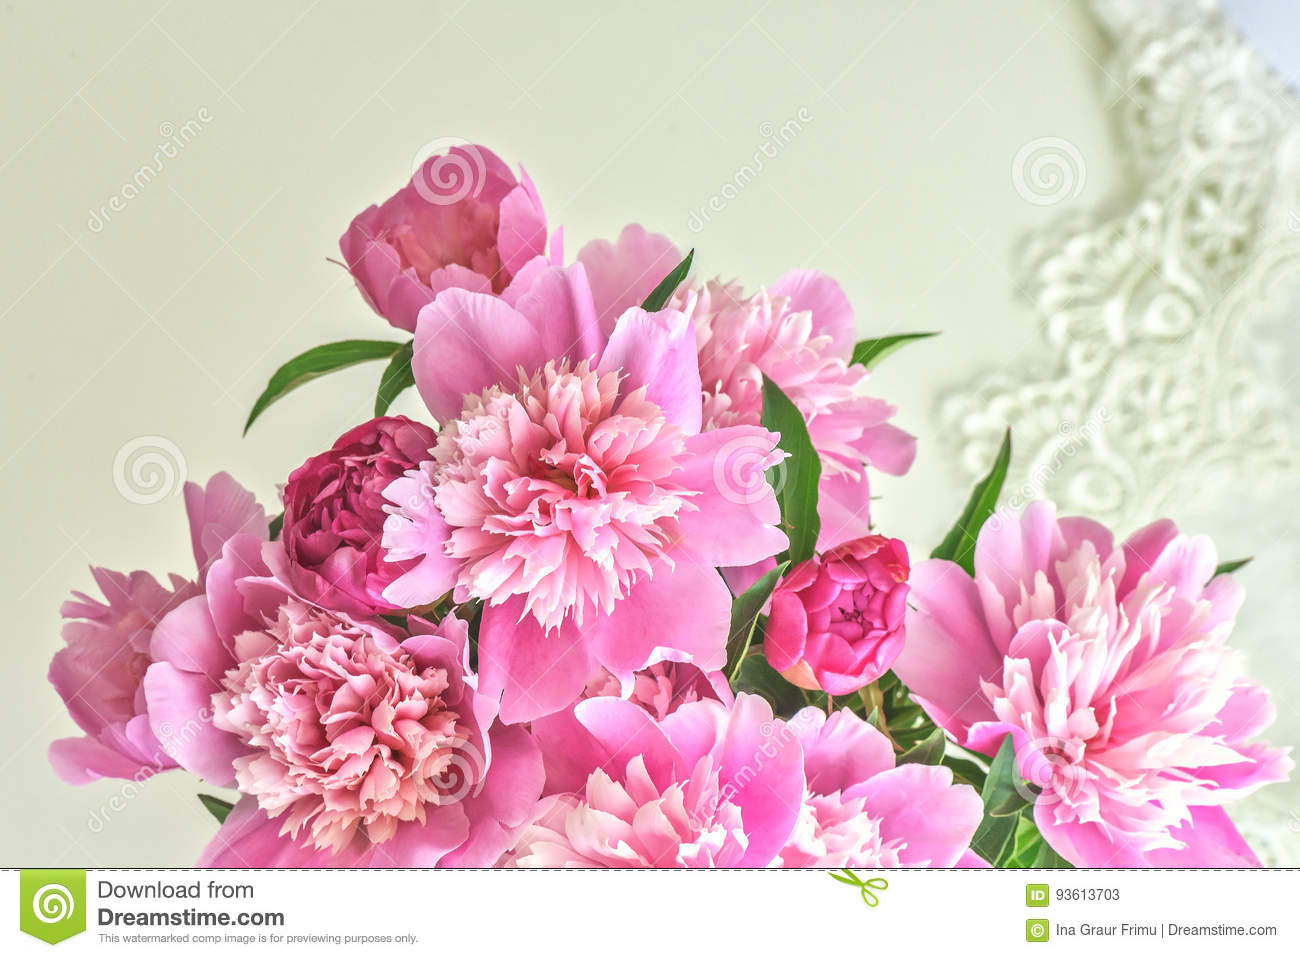 Peony flowers bouquet springtime fresh natural composition stock download peony flowers bouquet springtime fresh natural composition stock image image of fragrance izmirmasajfo